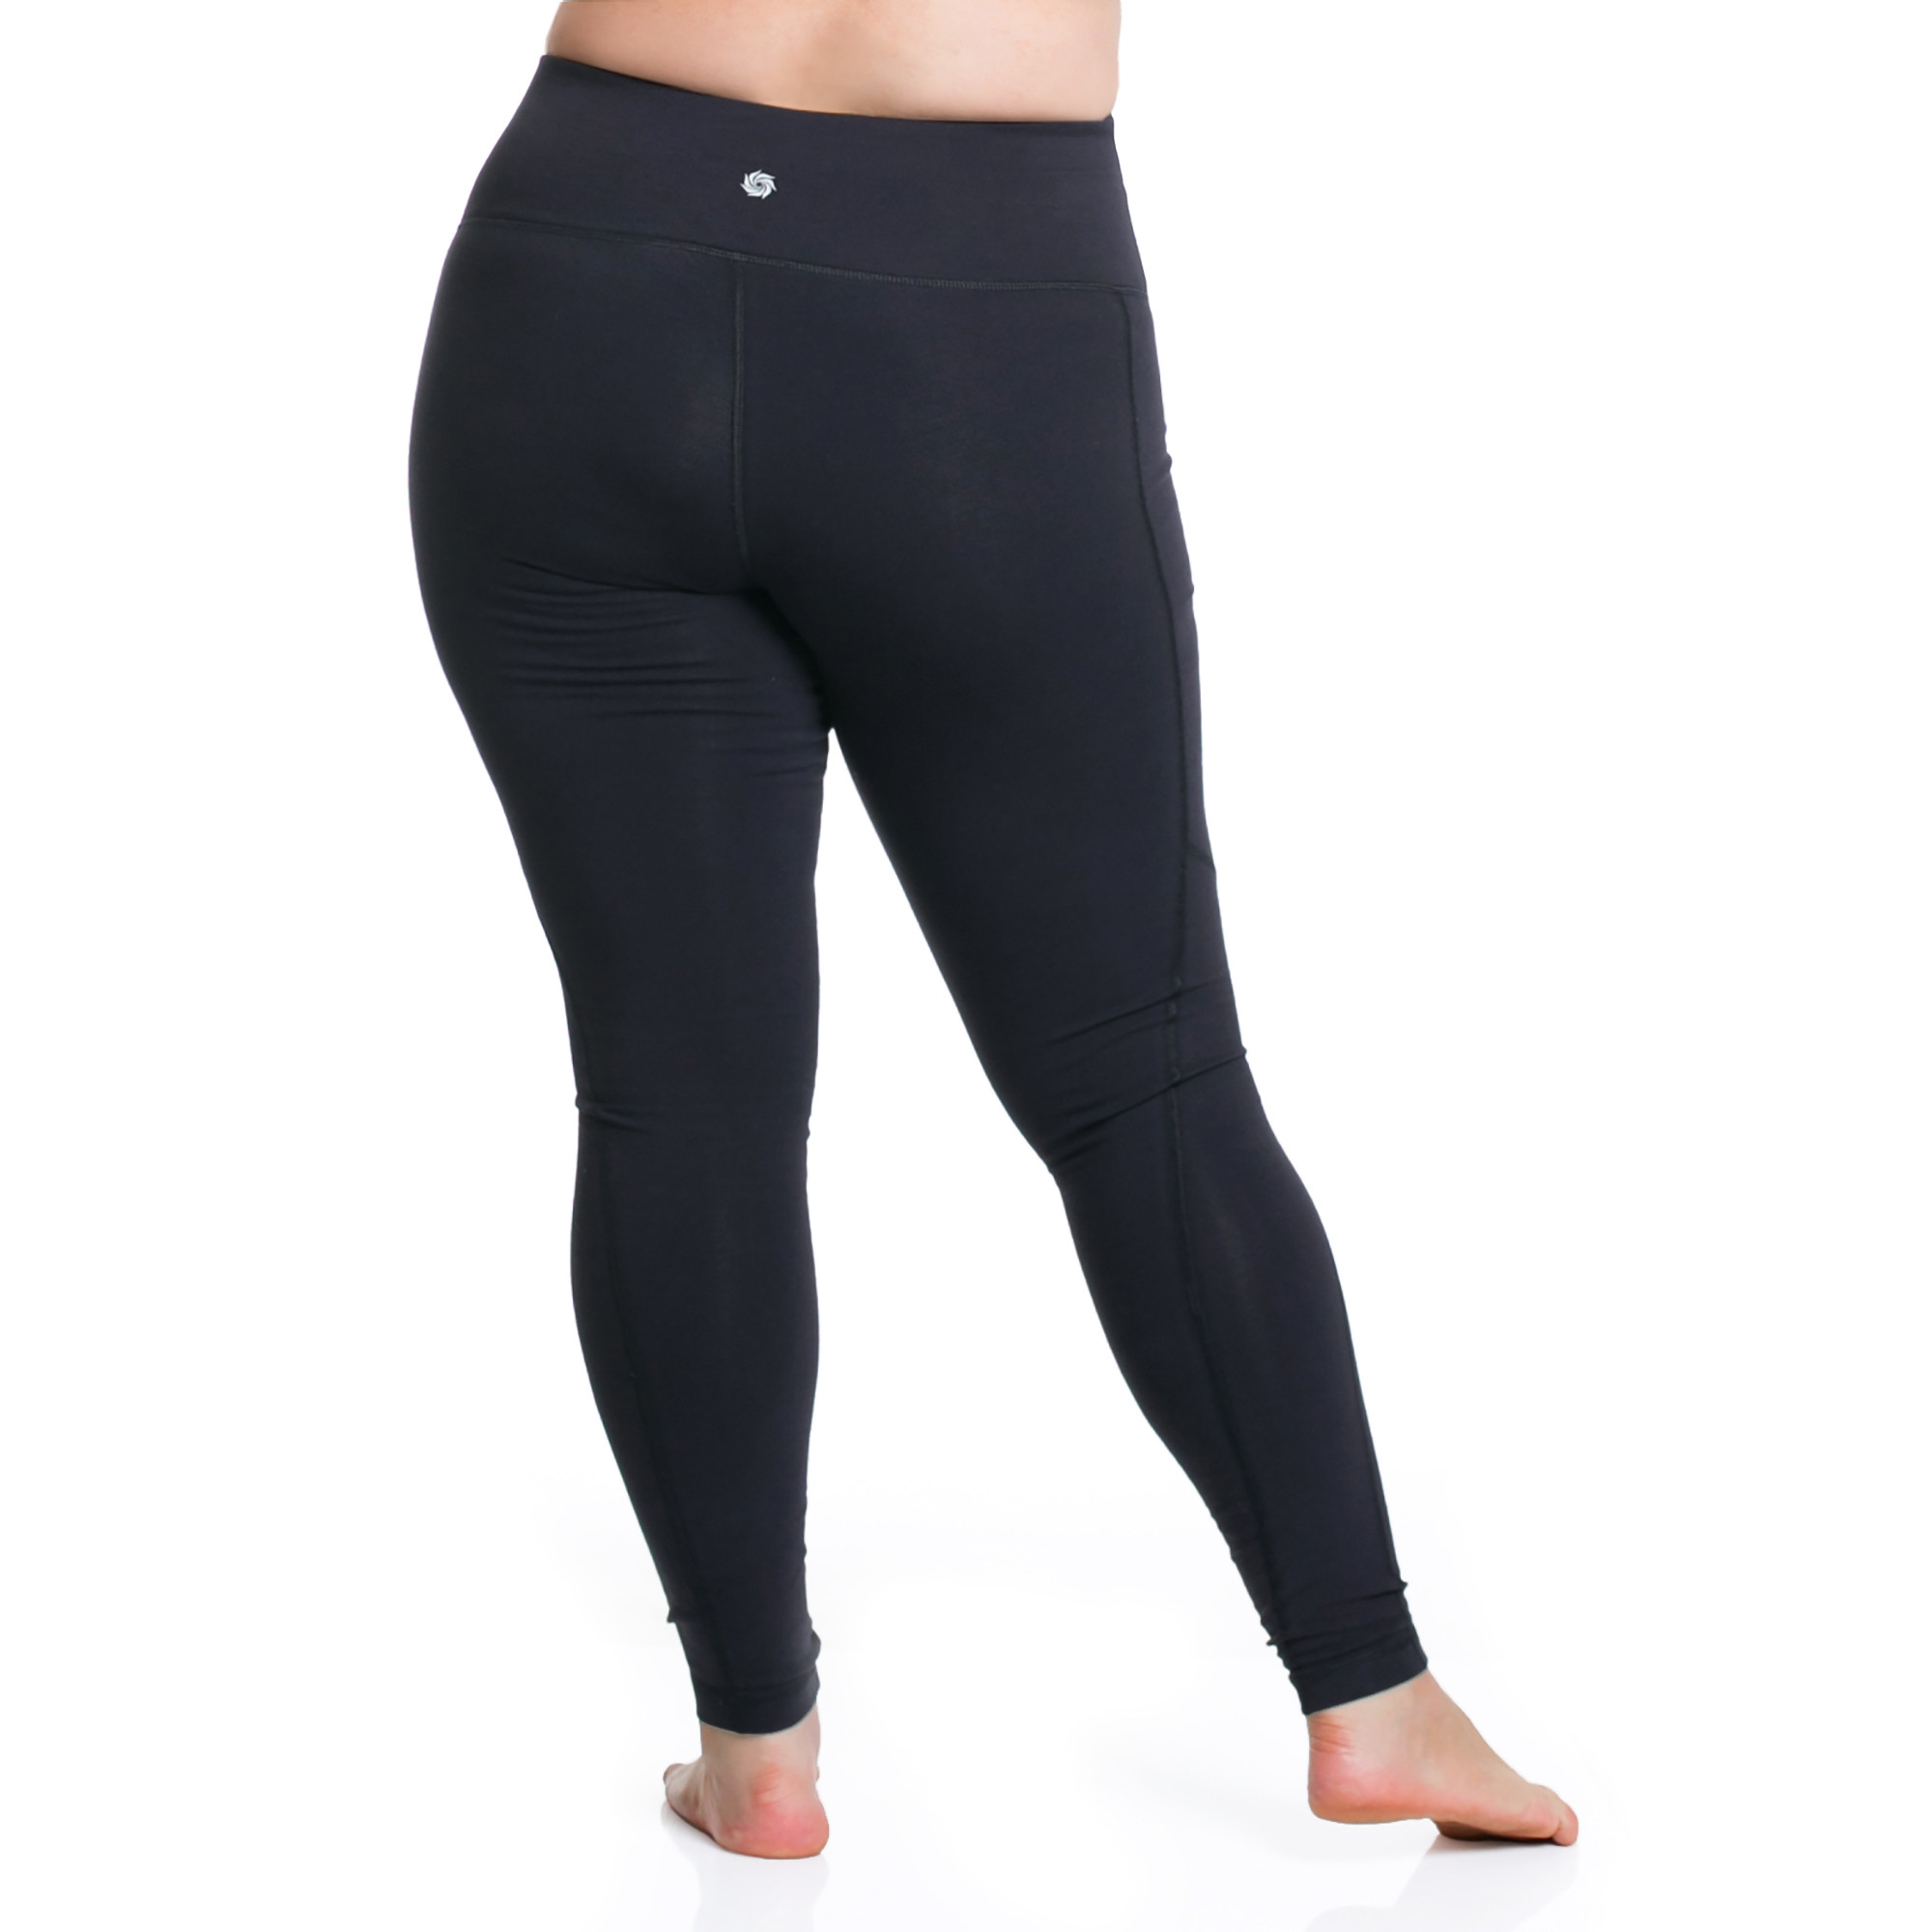 f9d43a929dc9f Curve Basix Compression Legging - Black - Plus Size Active